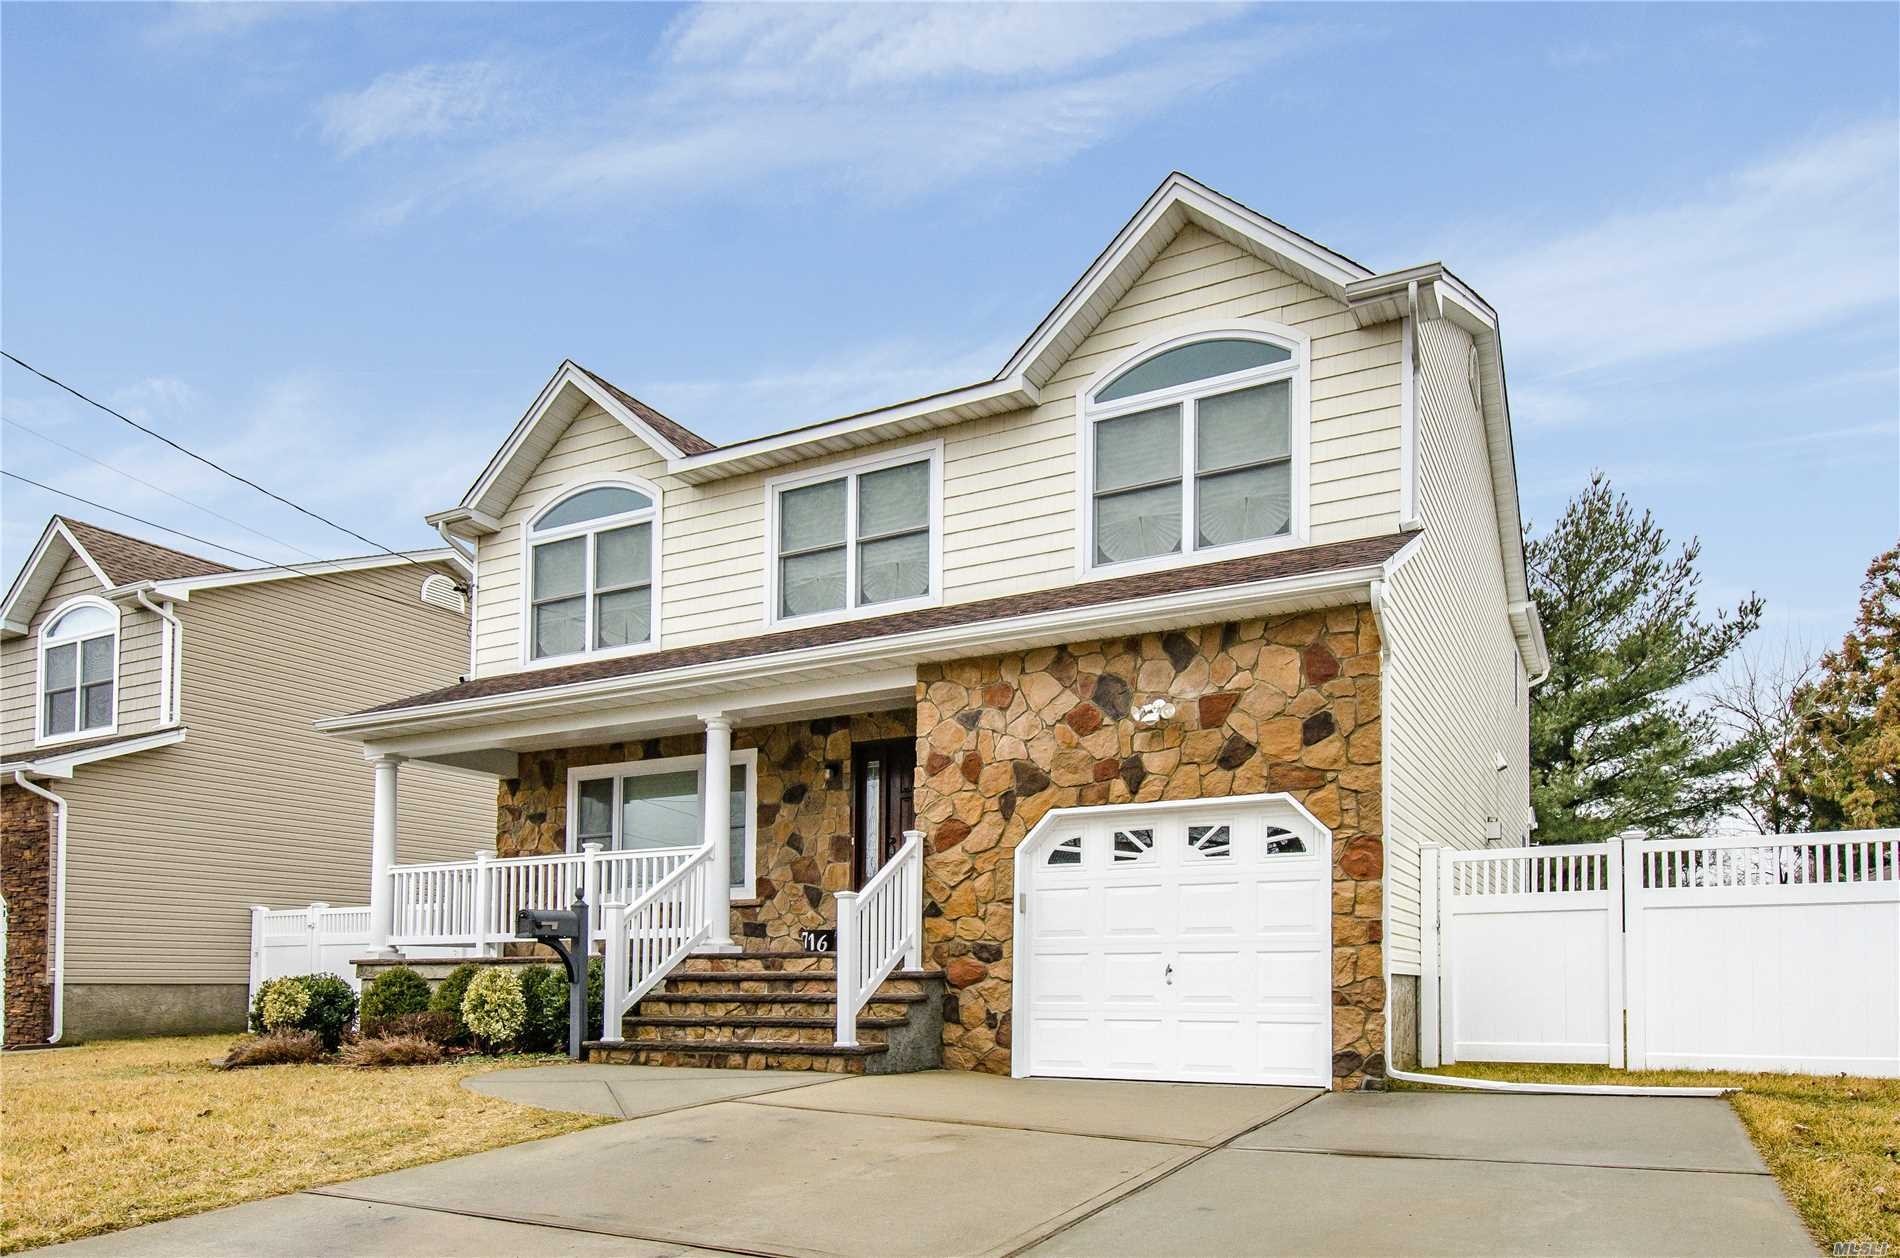 Better Than New, 4 Year Young Colonial, 4/5 Br, 3.5Ba, Huge Eik W/Granite Island S/S Appliances, Formal Dining, Den W/Gas Fireplace, Deck Doors To Backyard..5 Bath, F/F W/D Room, Magnificent Master Suite W/Jacuzzi Tub, 2 Walk In Closets, 3 Nice Size Bedrooms, Full Bath, Beautifully Redone Full Finished Basement, W/Room For Mom, W/D Hookup.3 Zone Heat, 3 Zone Cac. 6.64% Tax Reduction 19/20.Grievance Filed For 20/21.....